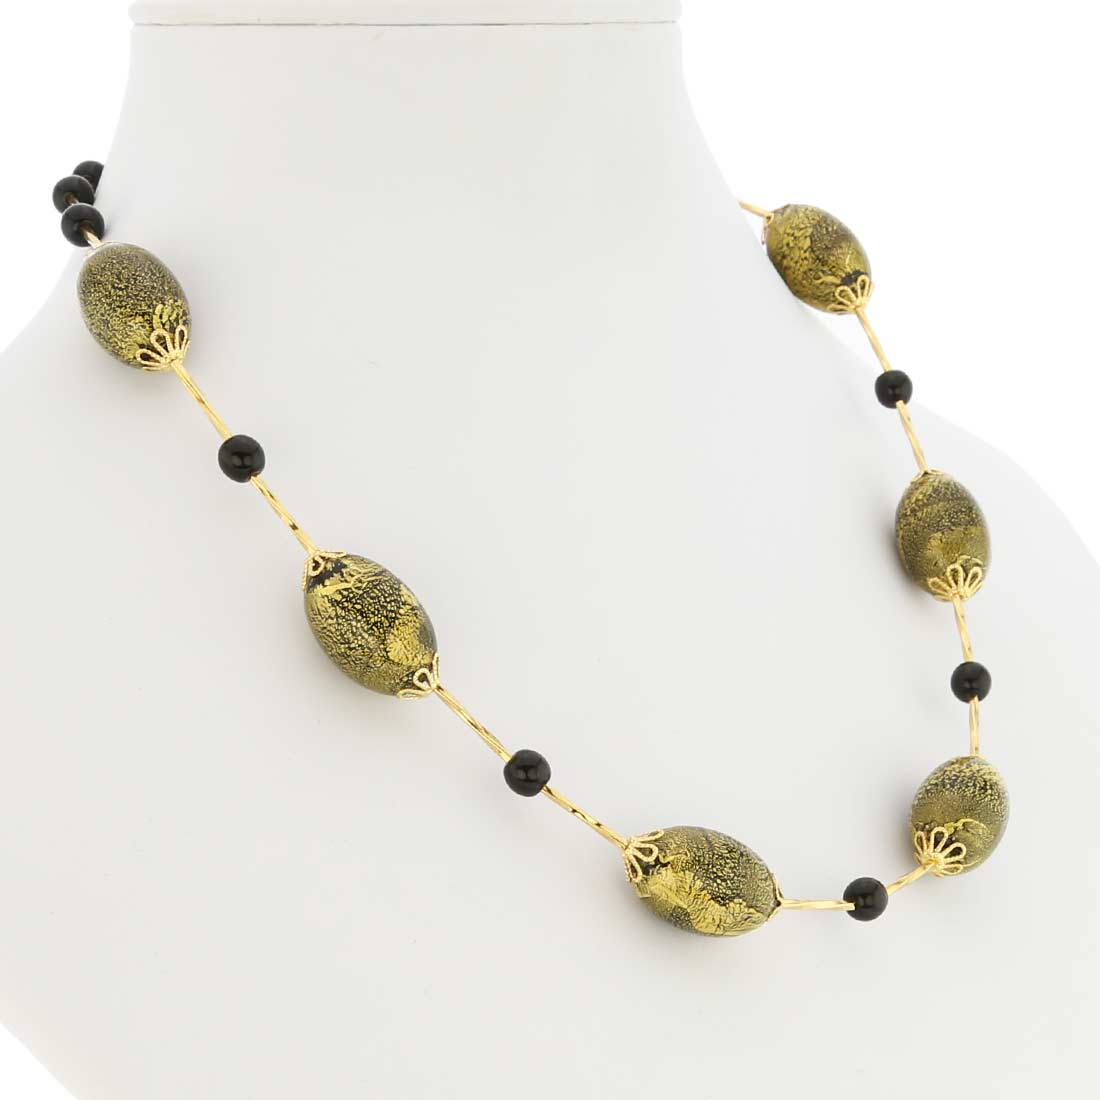 Golden Glow Necklace - Summer Night